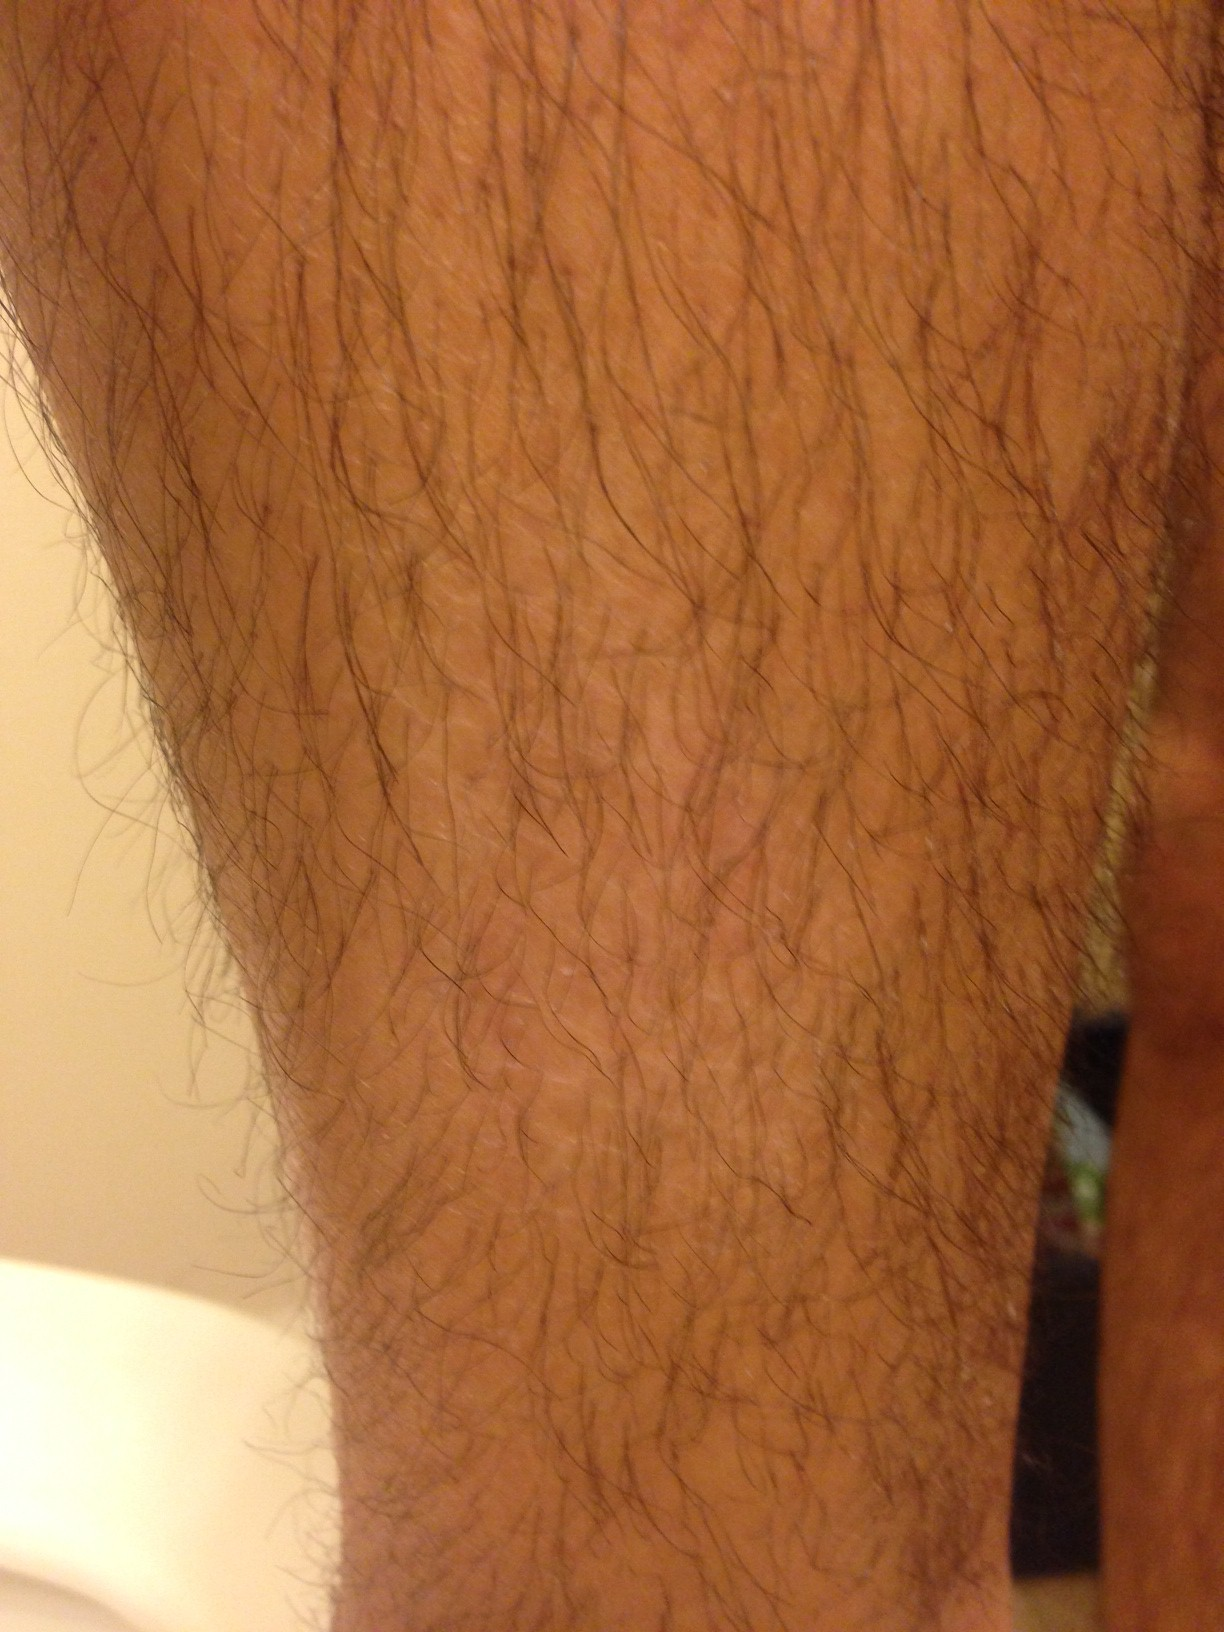 Free download program Dry Patch Of Skin On Thigh - managermaxx